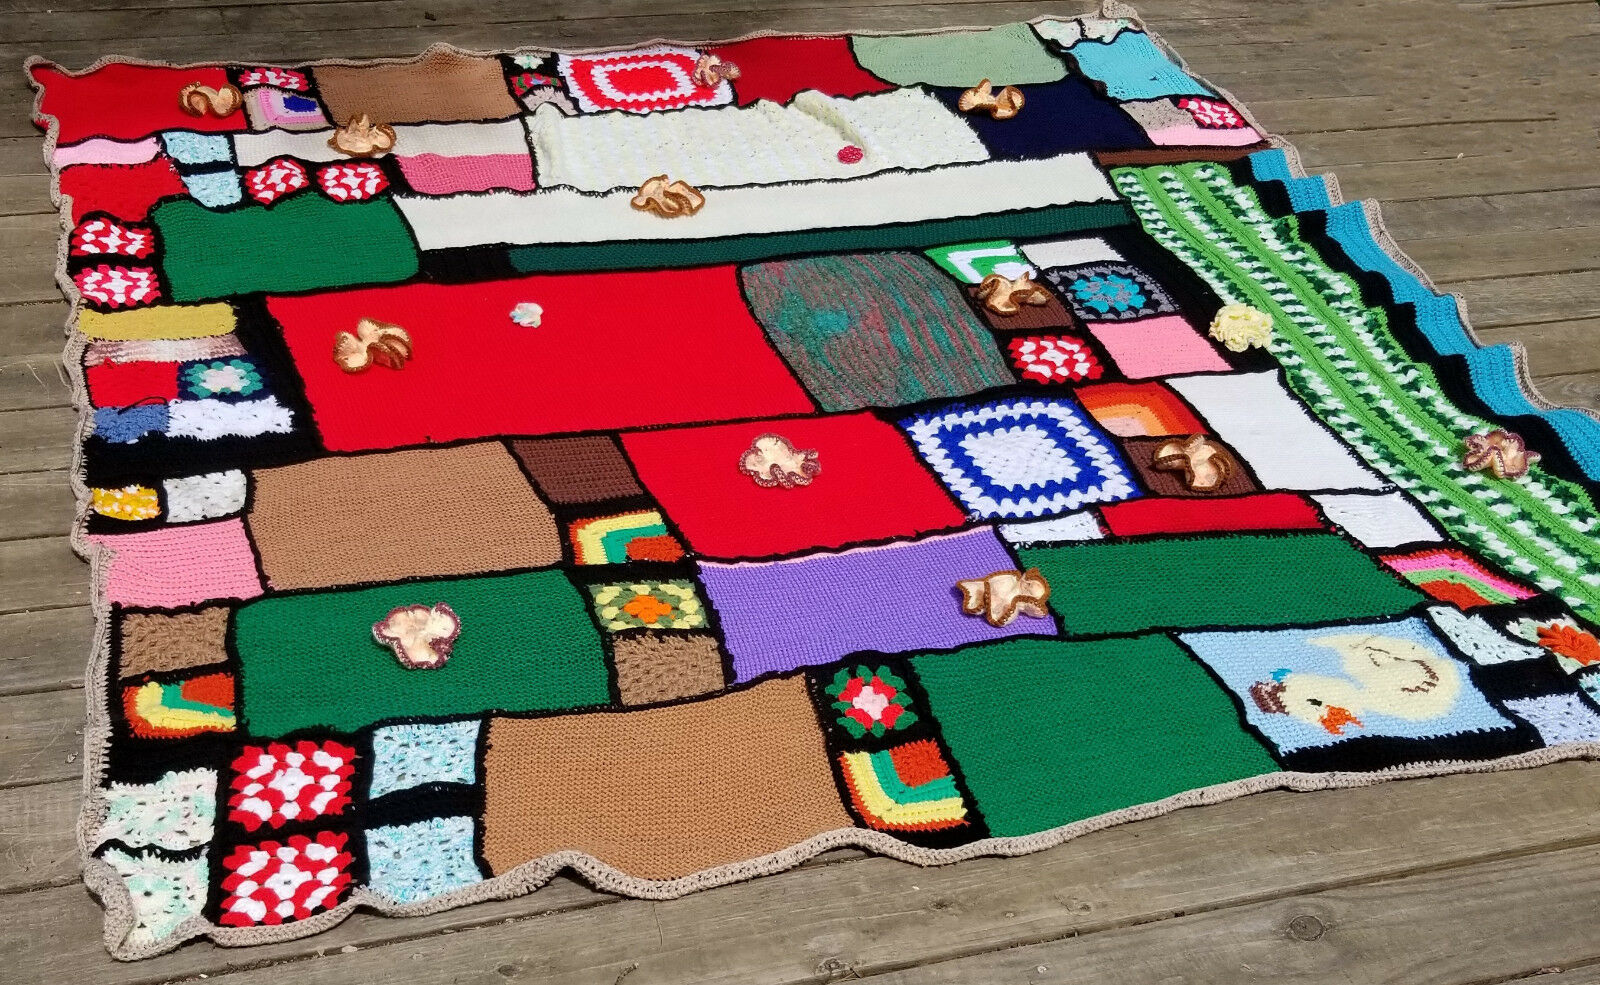 Hand Crocheted Afghan Crazy Quilt Style Patchwork BoHo Unused 84  x 86  Unique